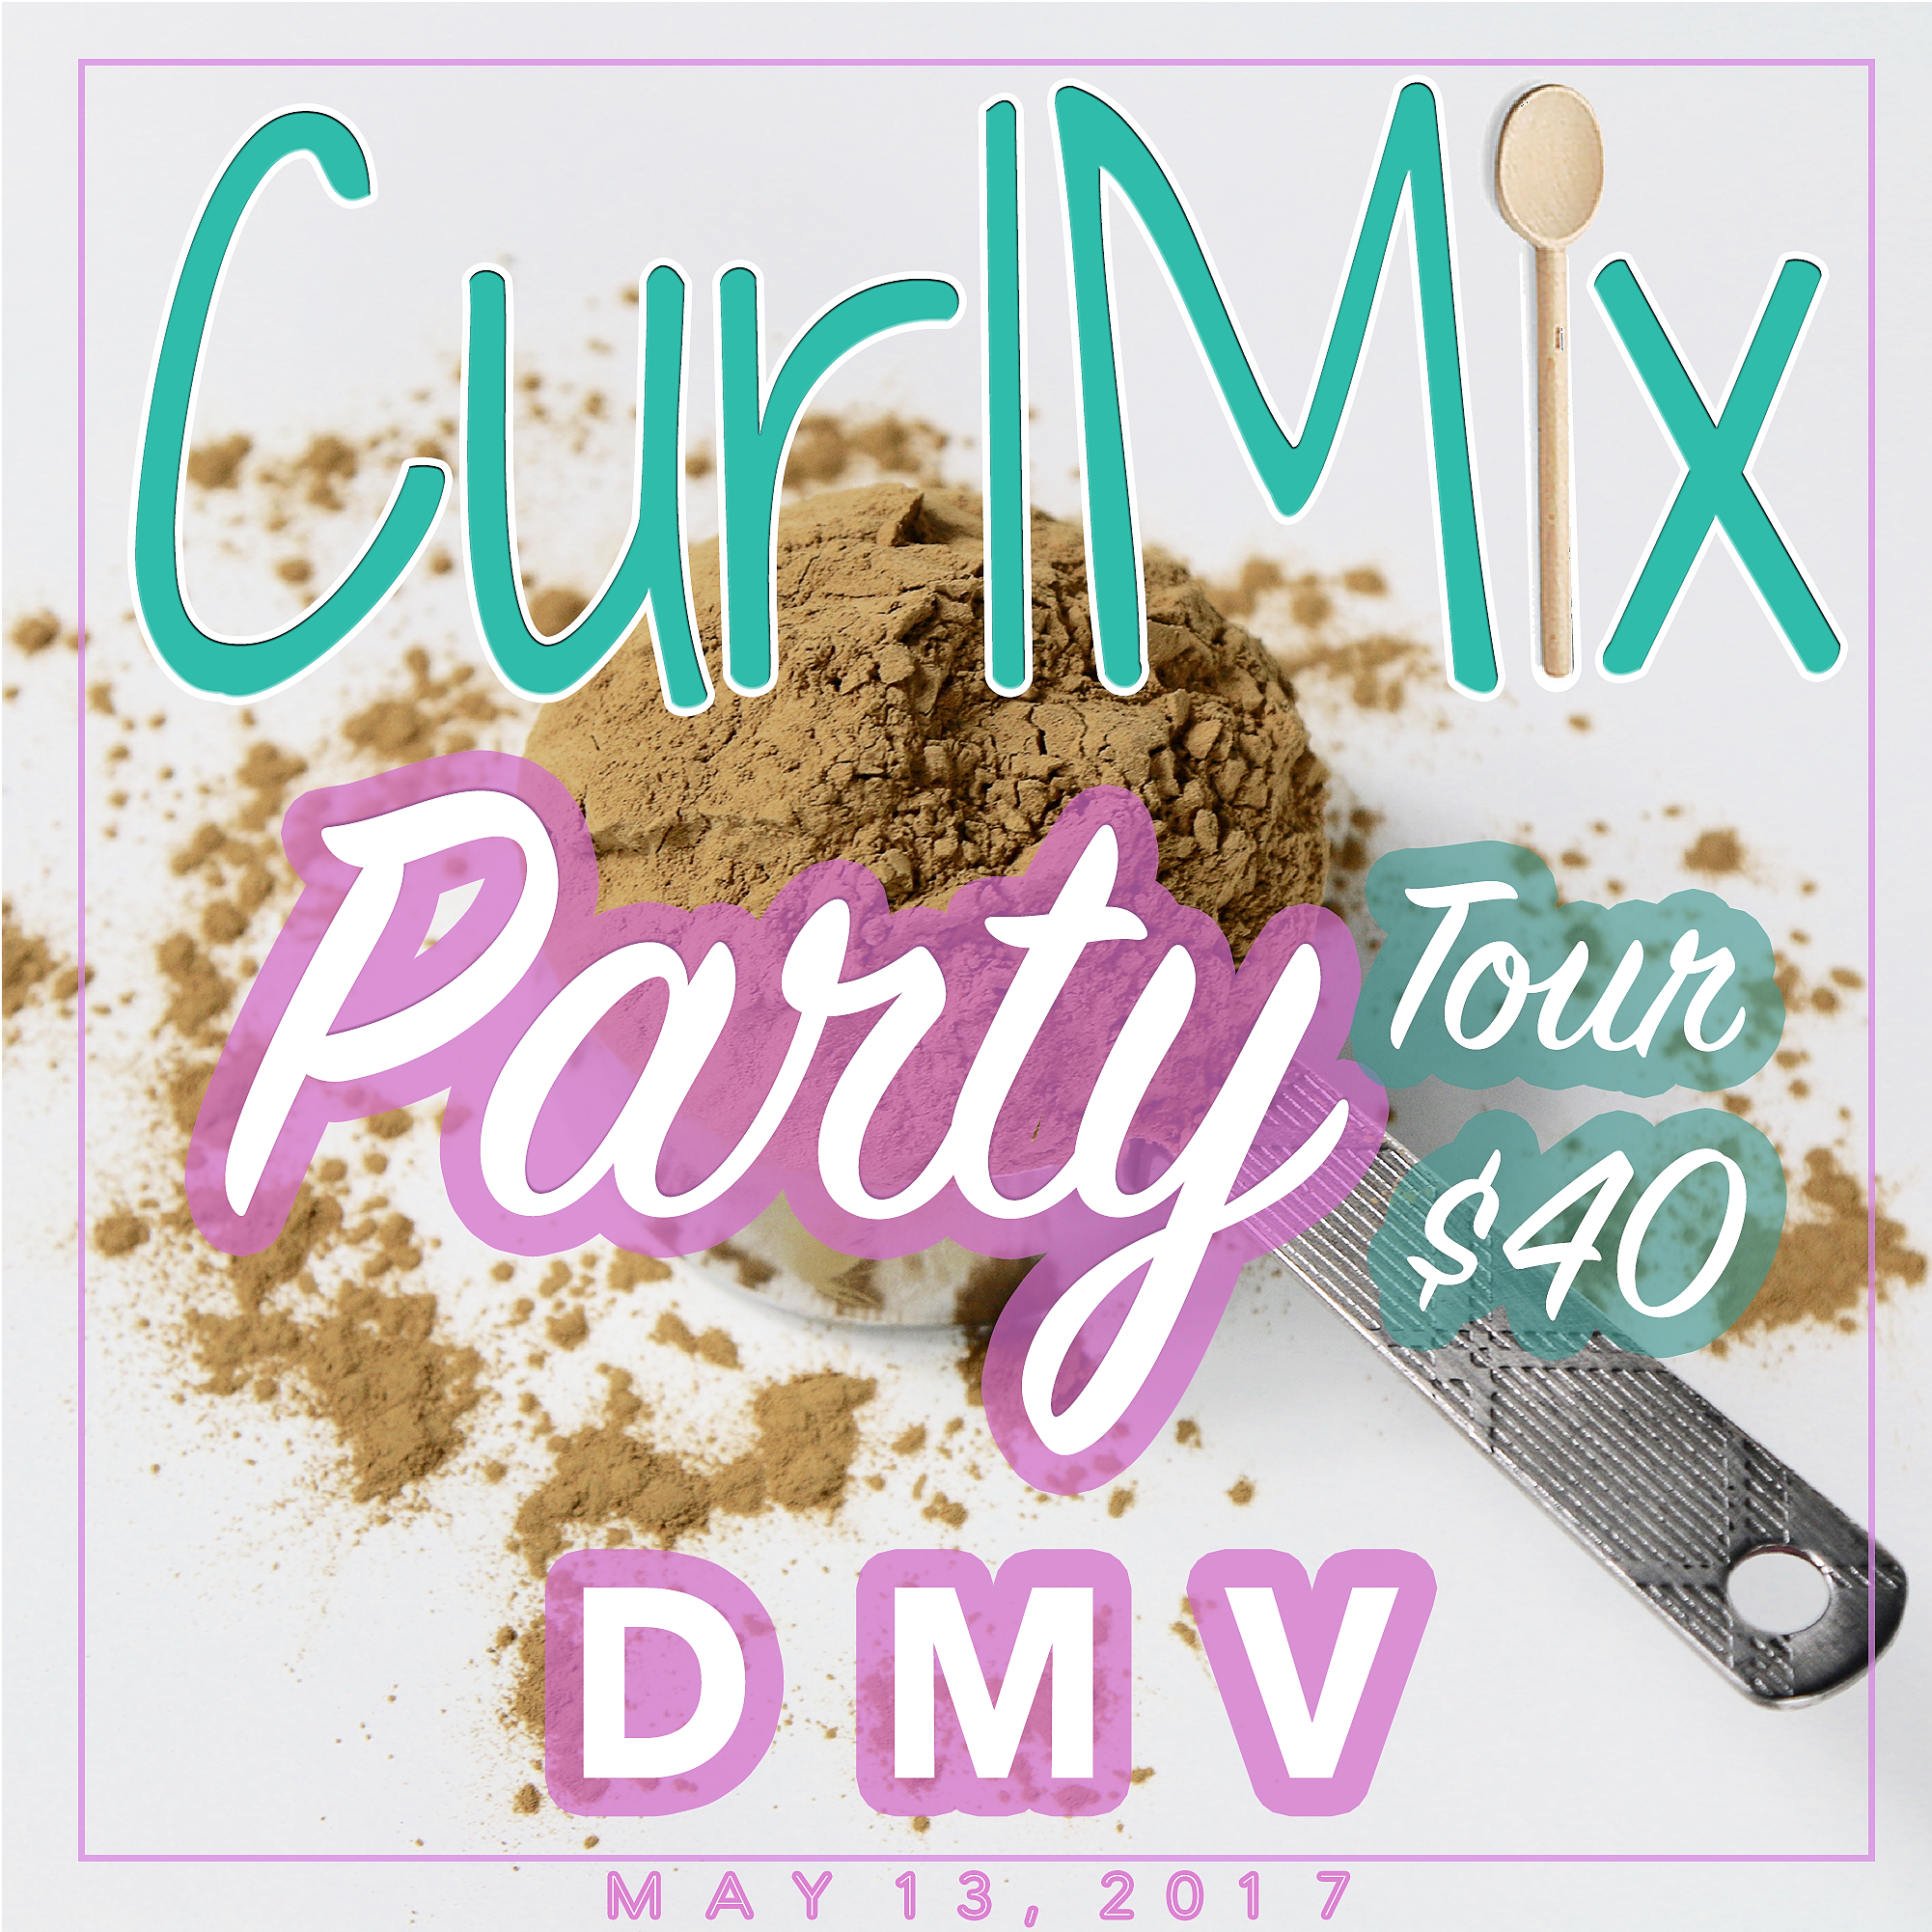 CurlMix Party Tour - DMV - Saturday, May 13, 2017